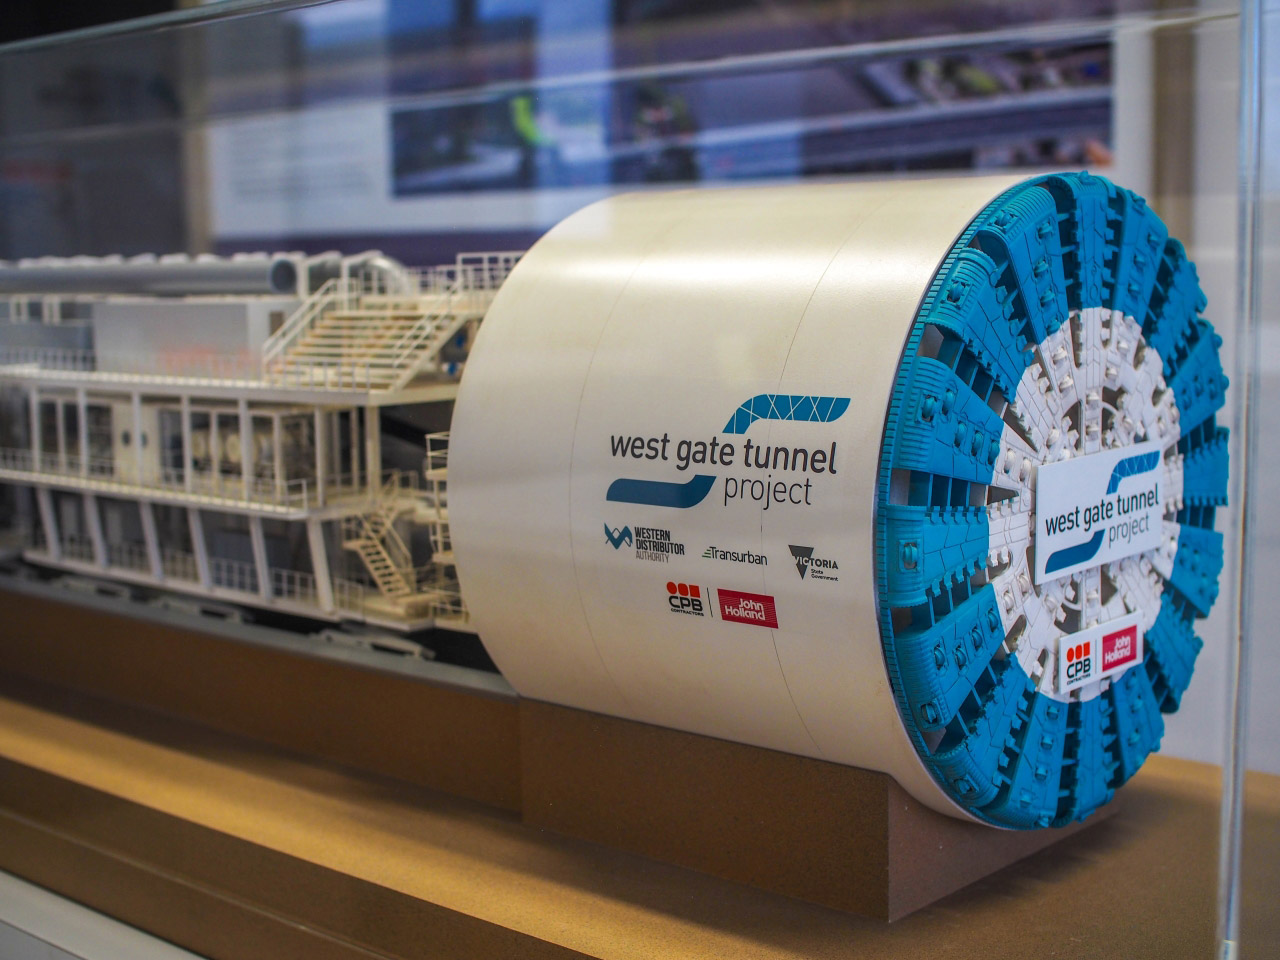 Photo of the TBM model at the information centre